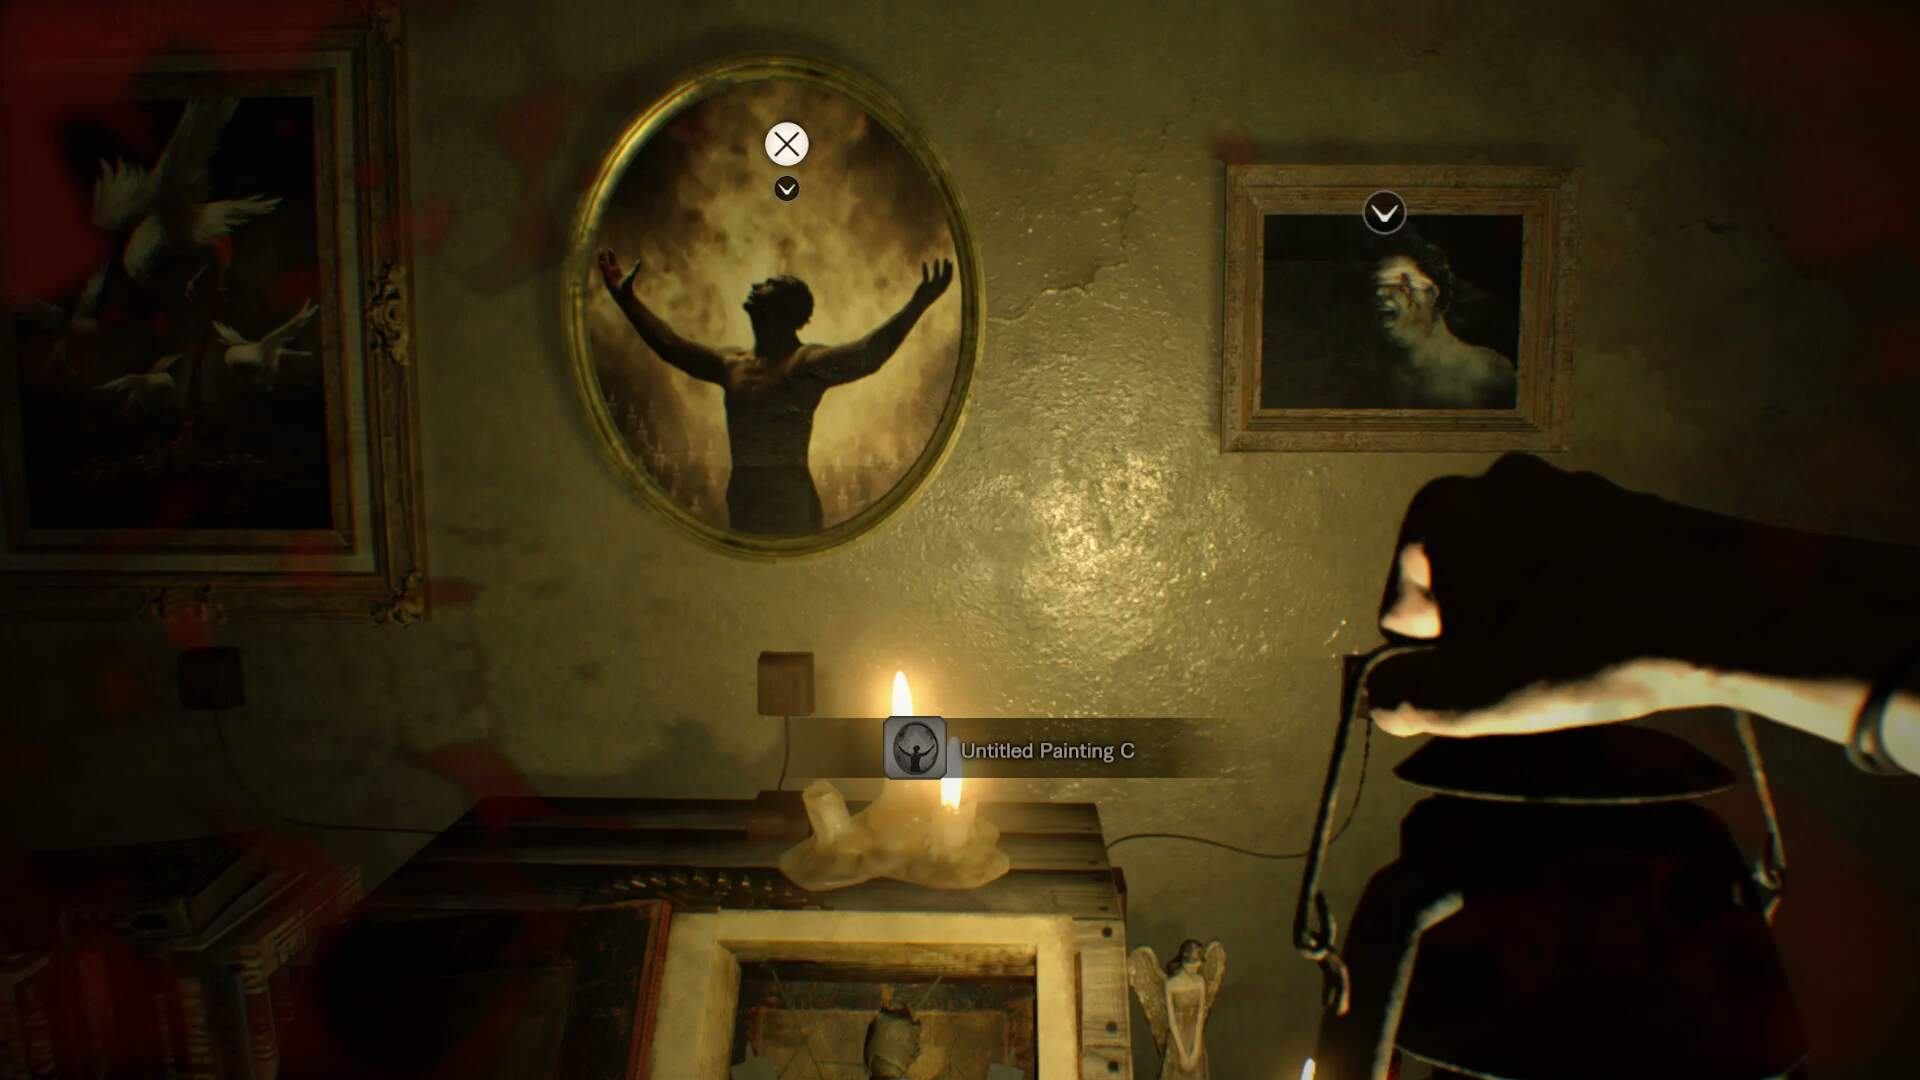 Resident Evil 7 Banned Footage DLC Guide: How to Escape the Bedroom